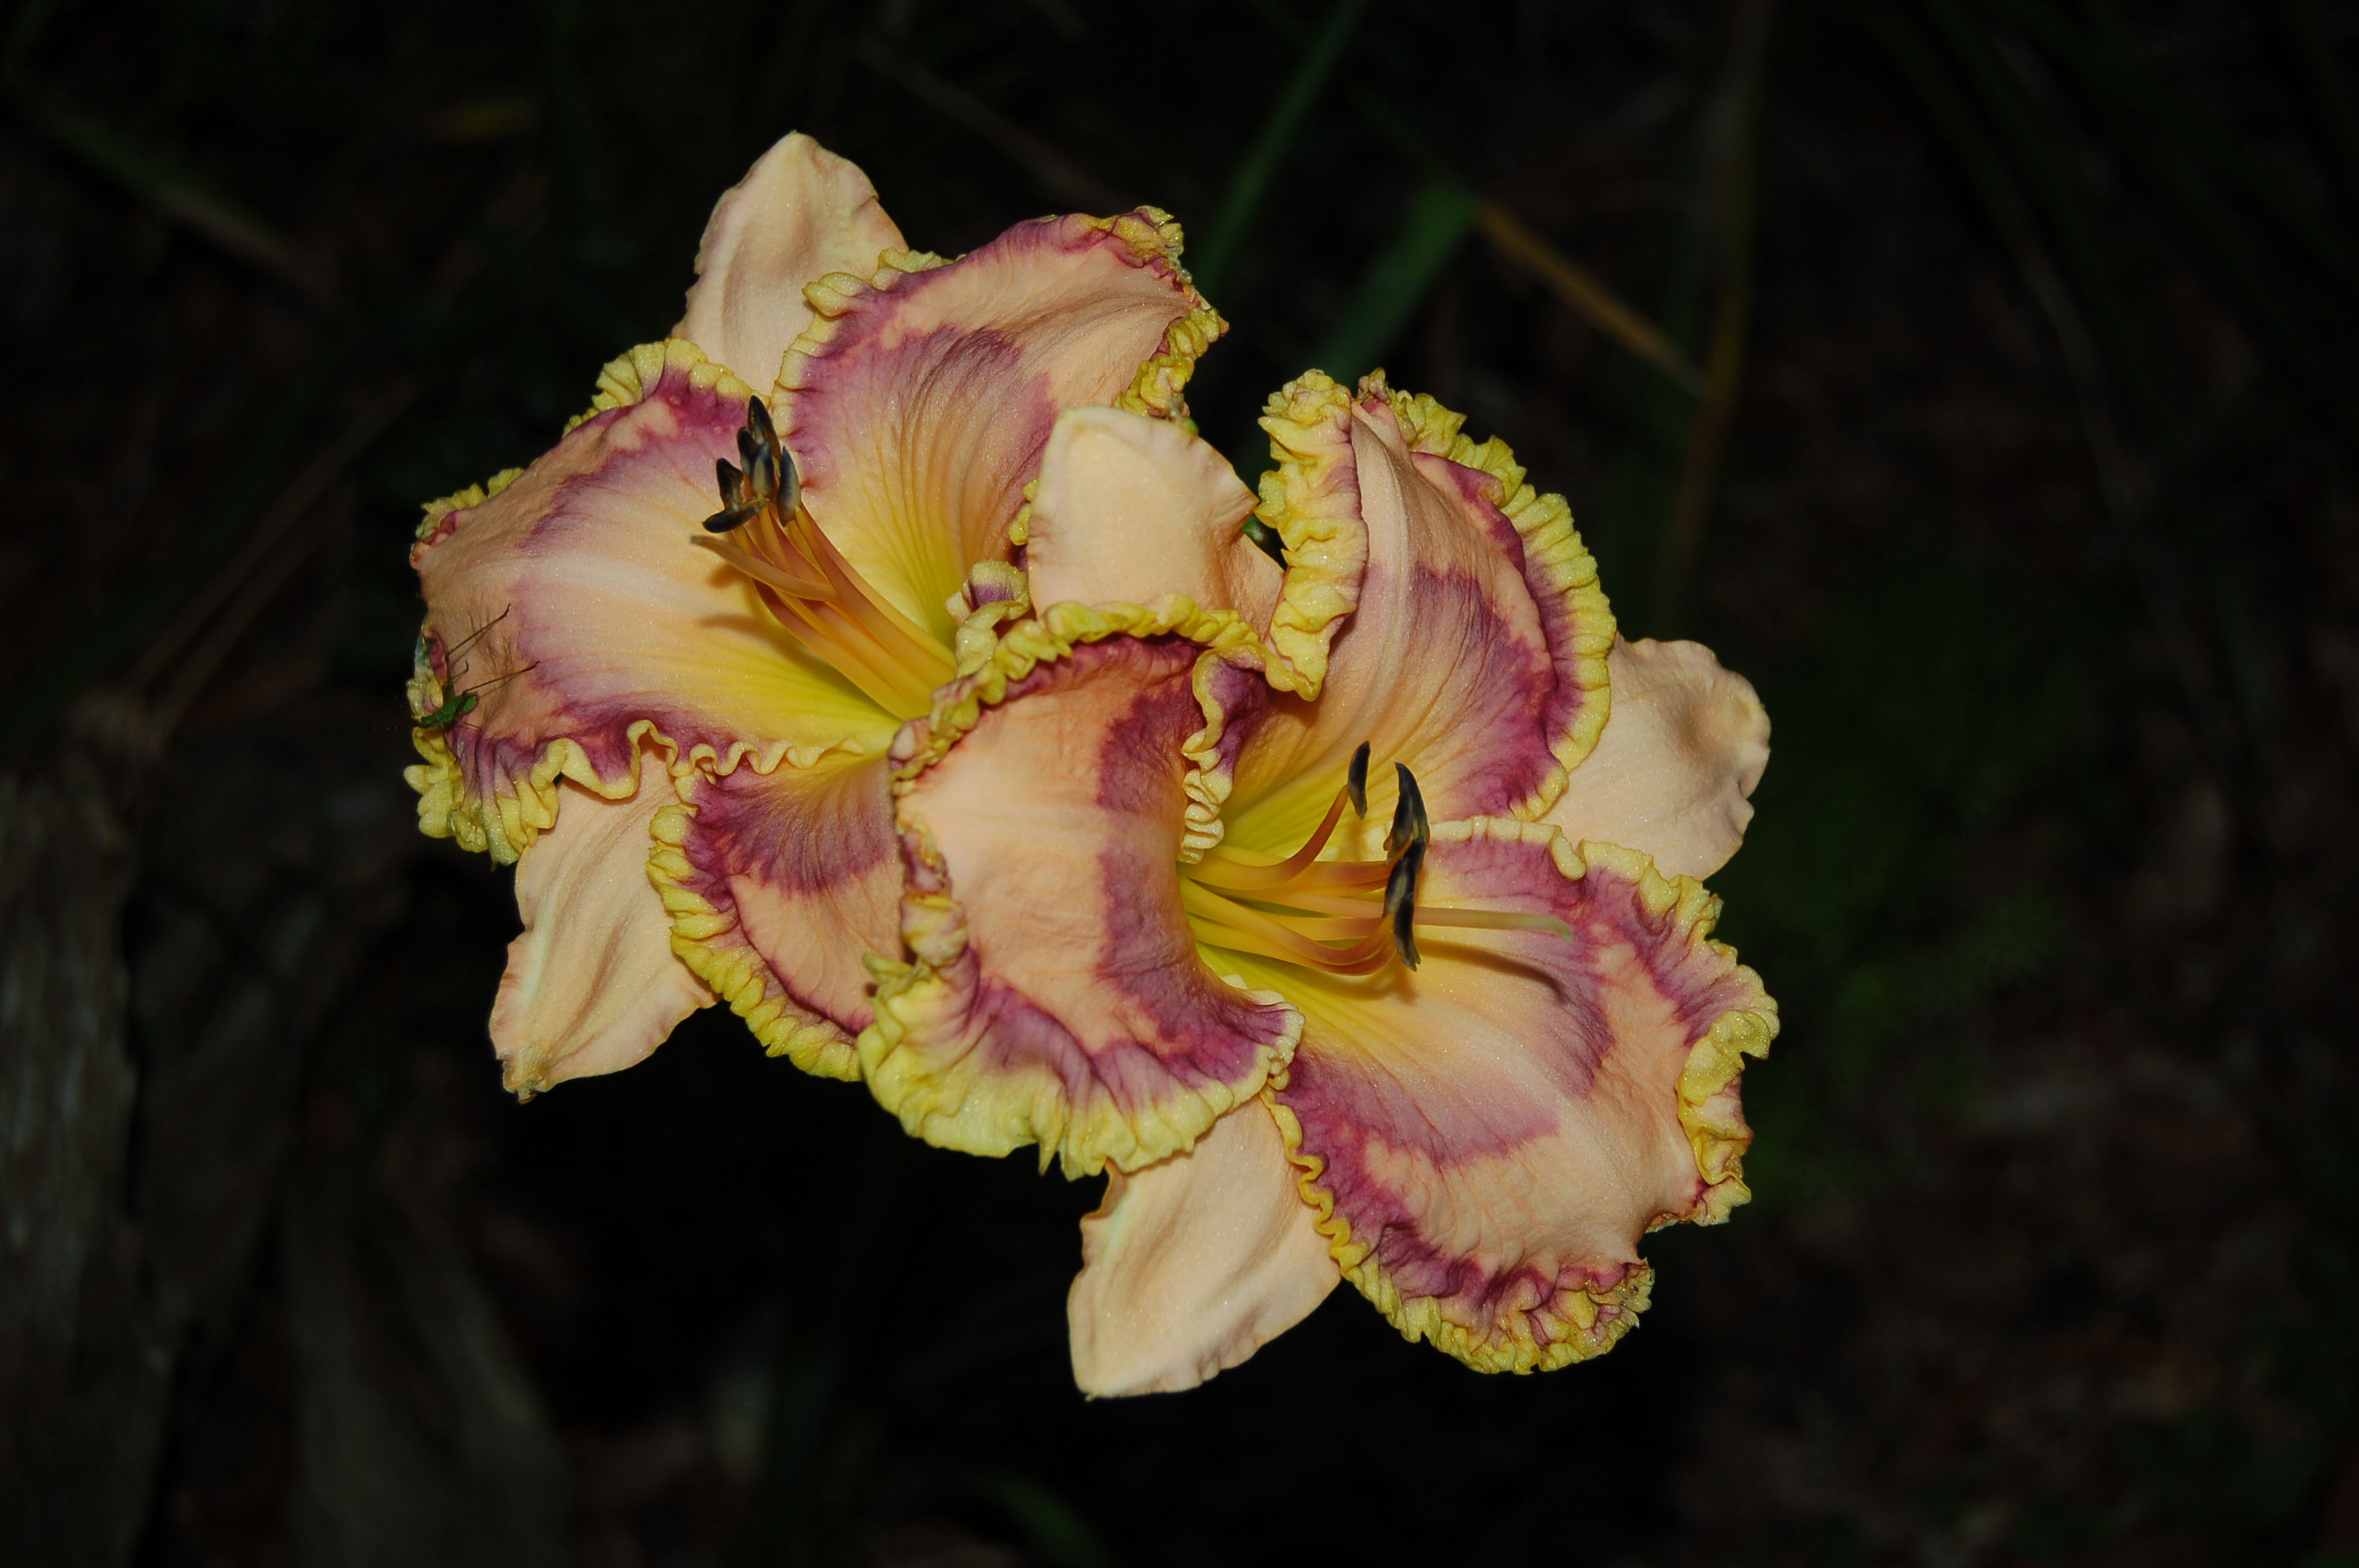 yellow-purple-ruffled-day-lilies-stock-photos-nature-flowers-linda-bateman